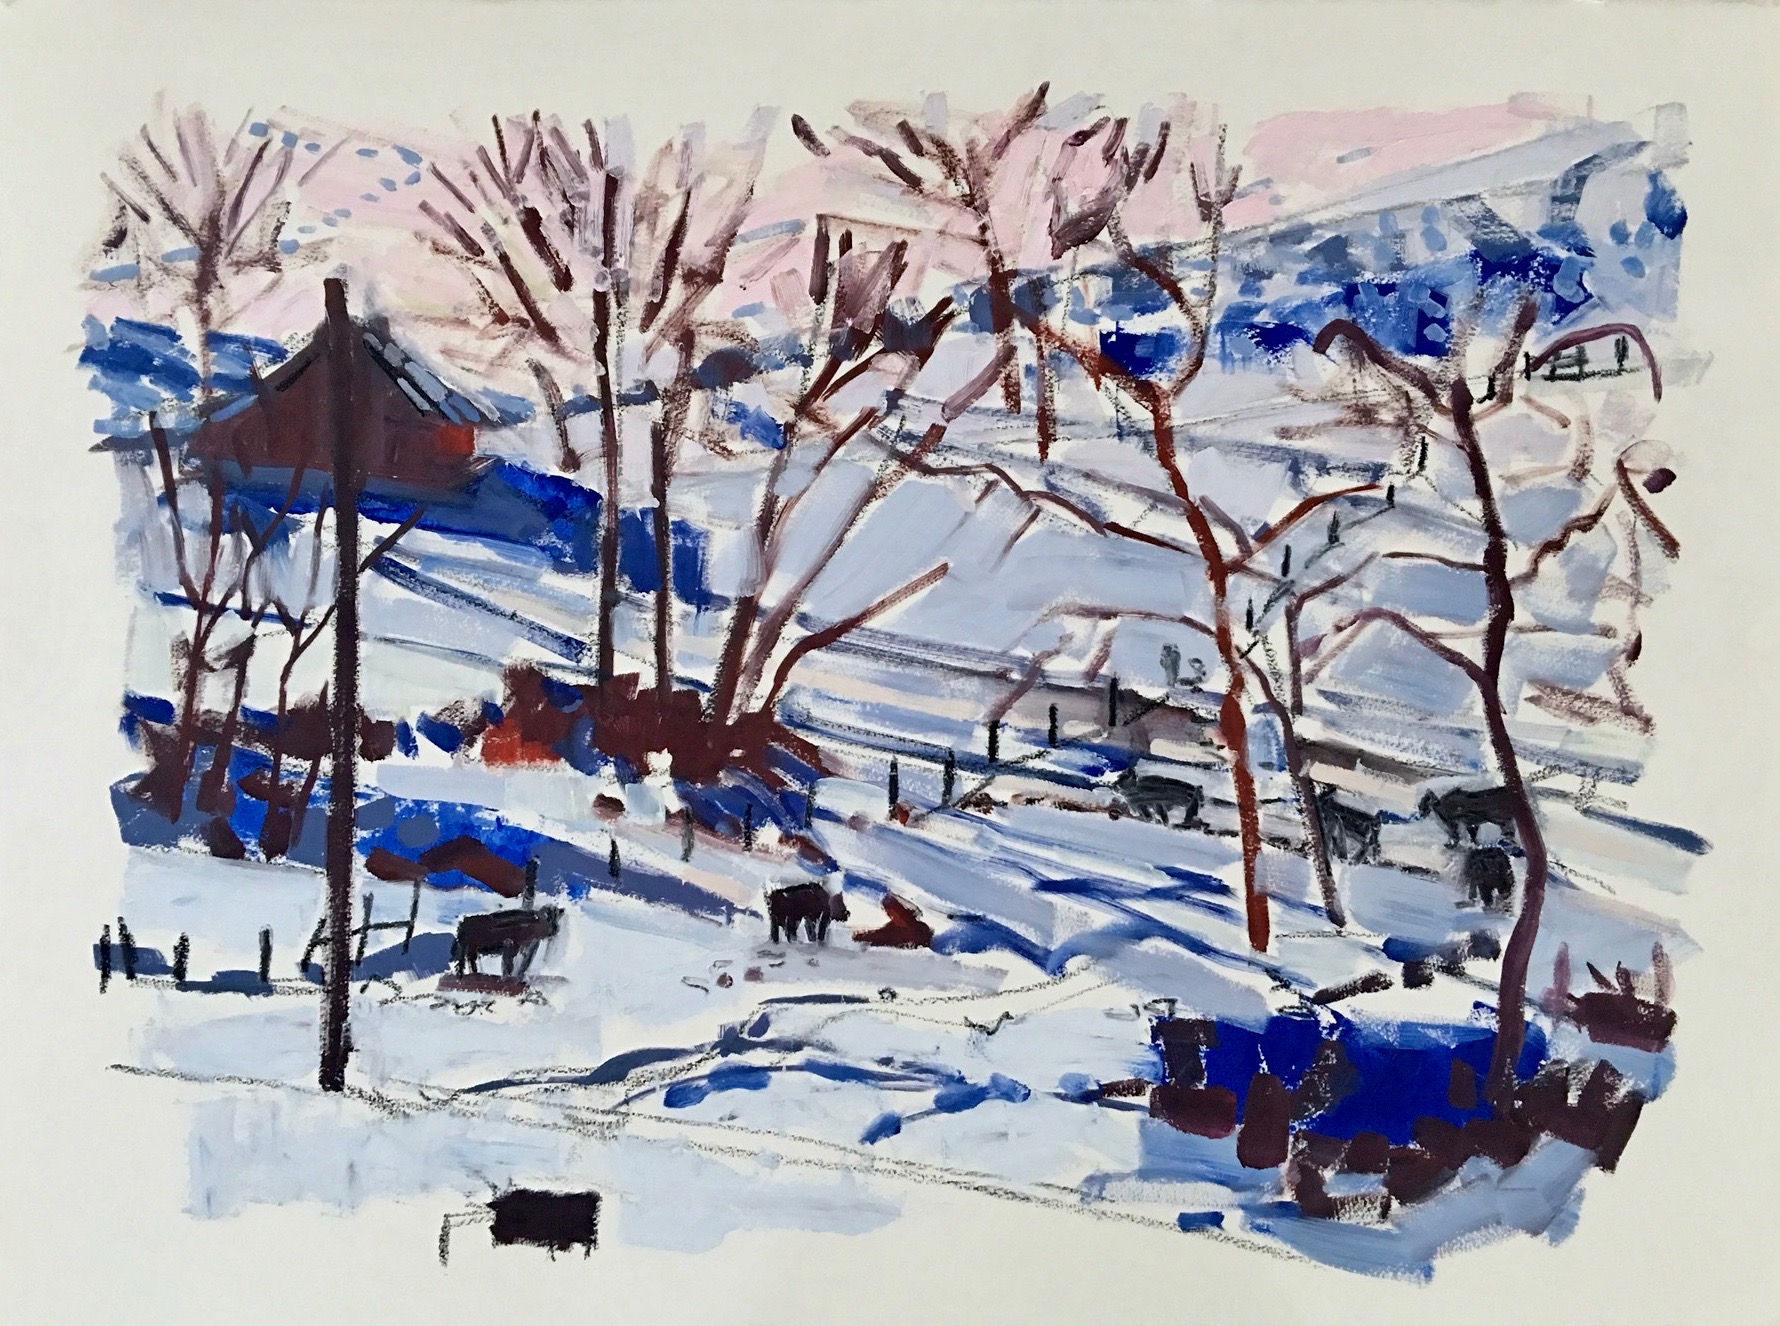 Cows in Winter, 23x30